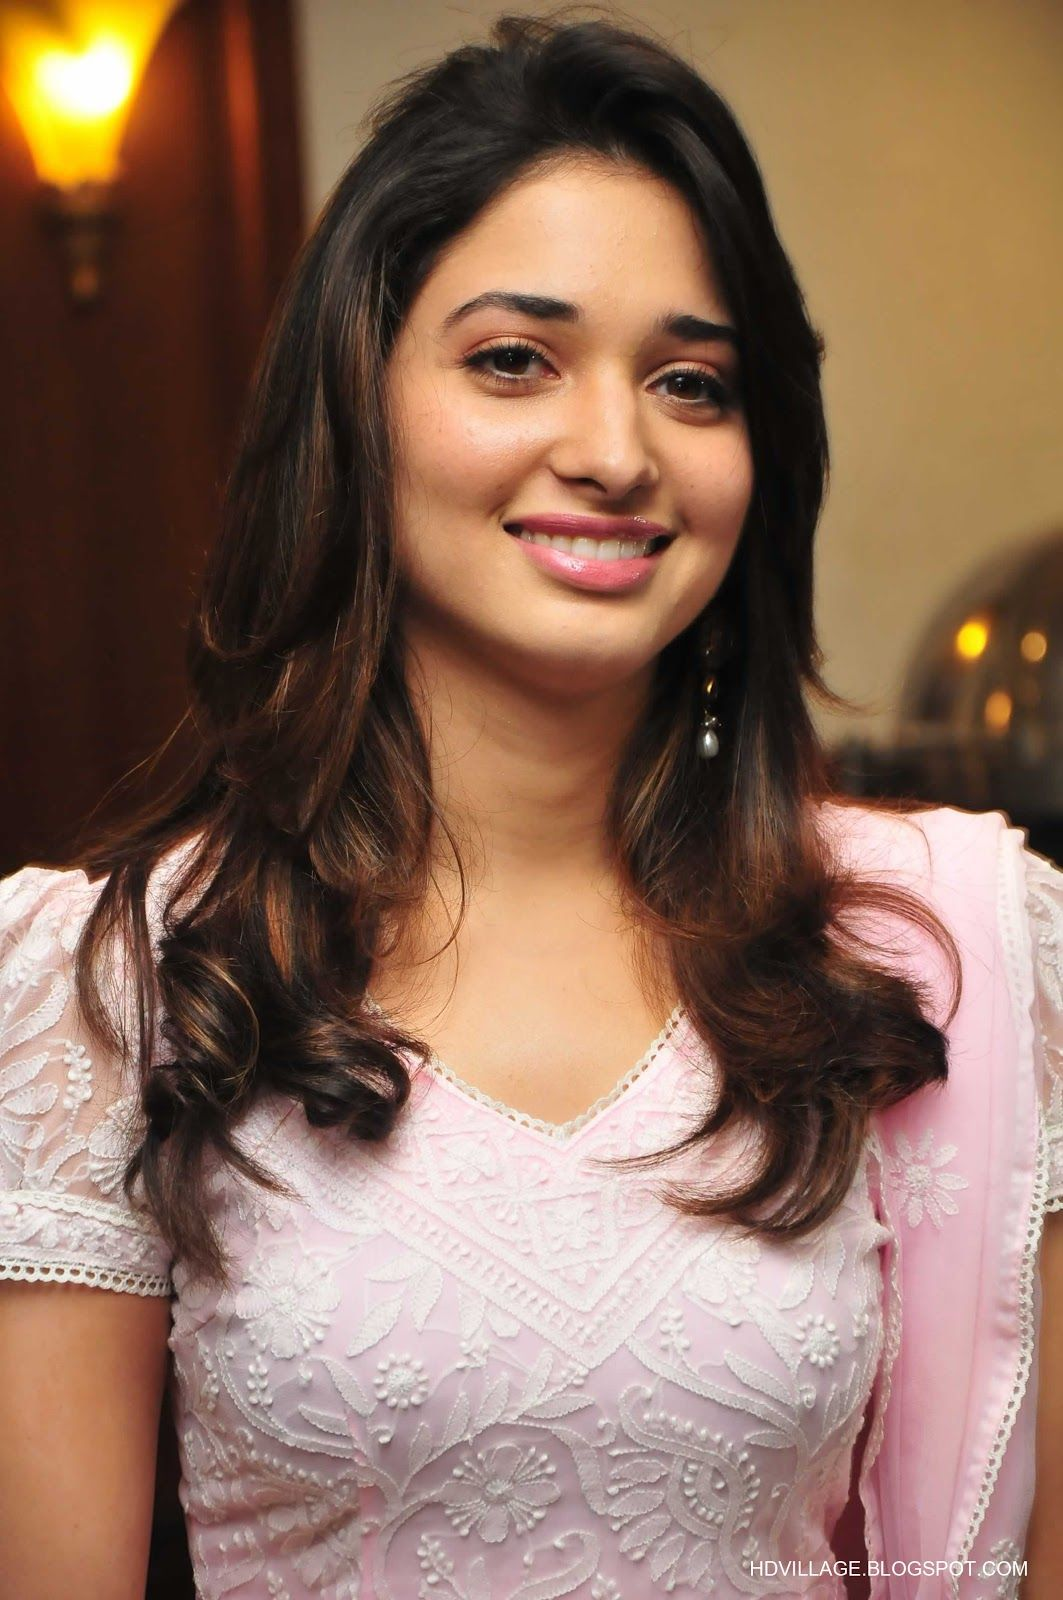 tamanna bhatia | tamanna | pinterest | pretty girls, feminine and